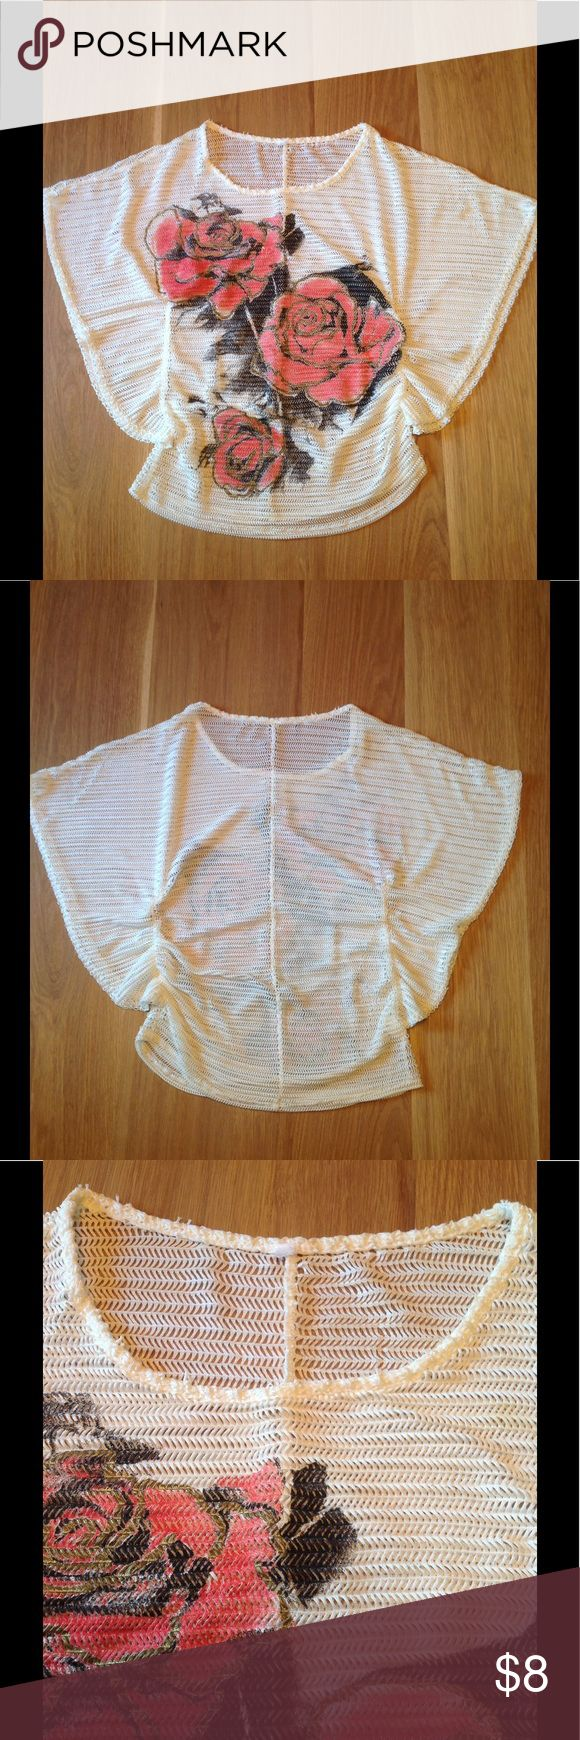 """Bell Sleeve Mesh Top Everything's coming up roses with this bell sleeve mesh top!  > Tags removed. A stretchy synthetic cloth, very durable.  > Fits a size small, but has a lot of give. See the Measurements below.  Approximate Measurements  (laying flat and unstretched) Shoulders: 19"""" Length: 24.5"""" Tops Blouses"""